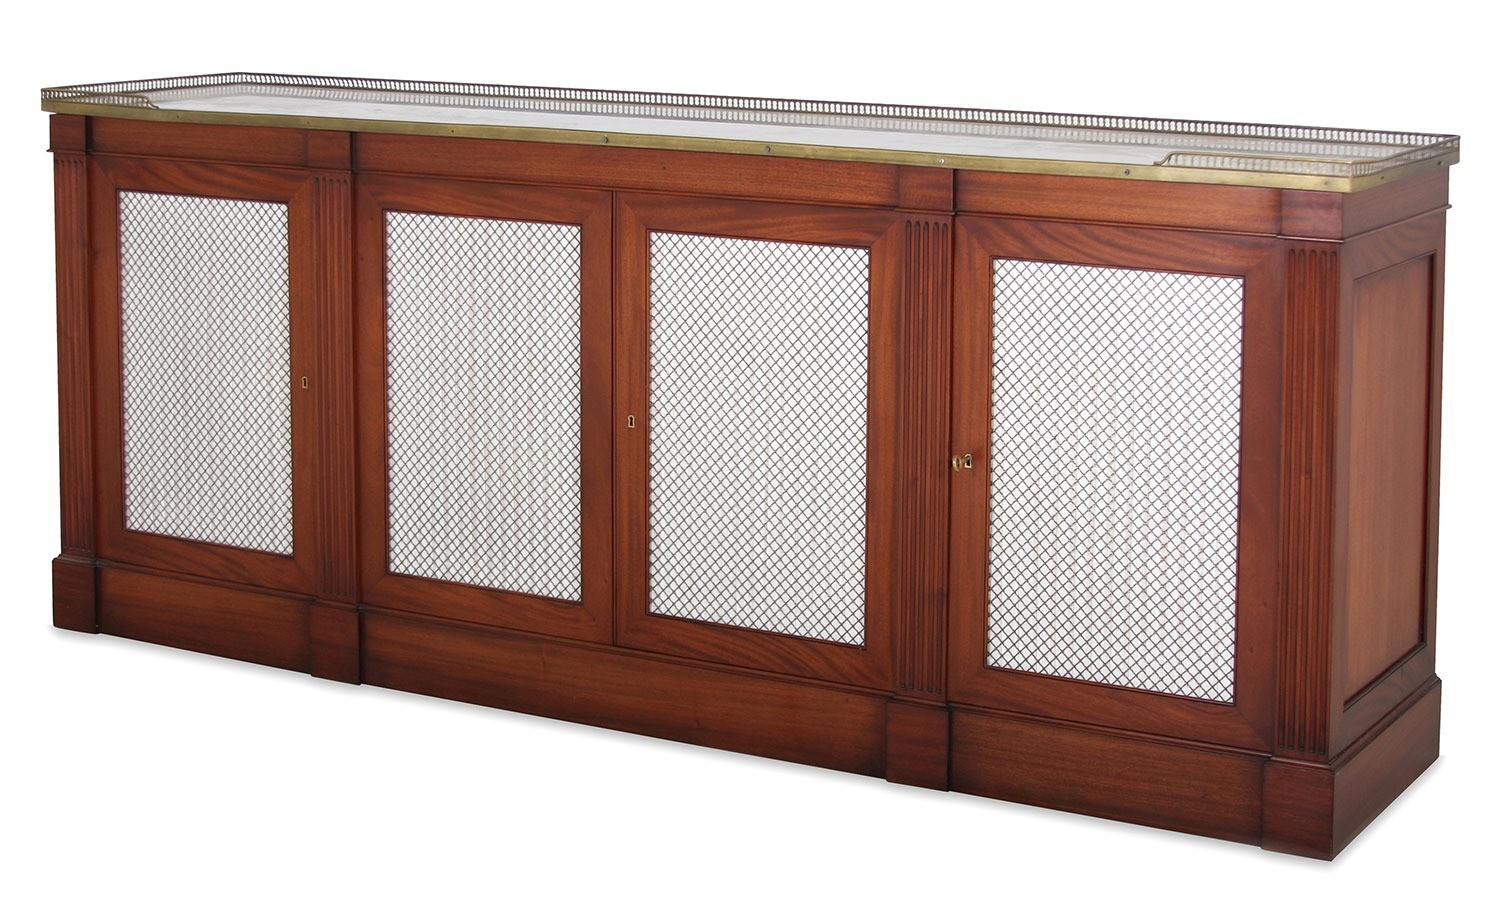 Mahogany side cabinet with brass grill doors